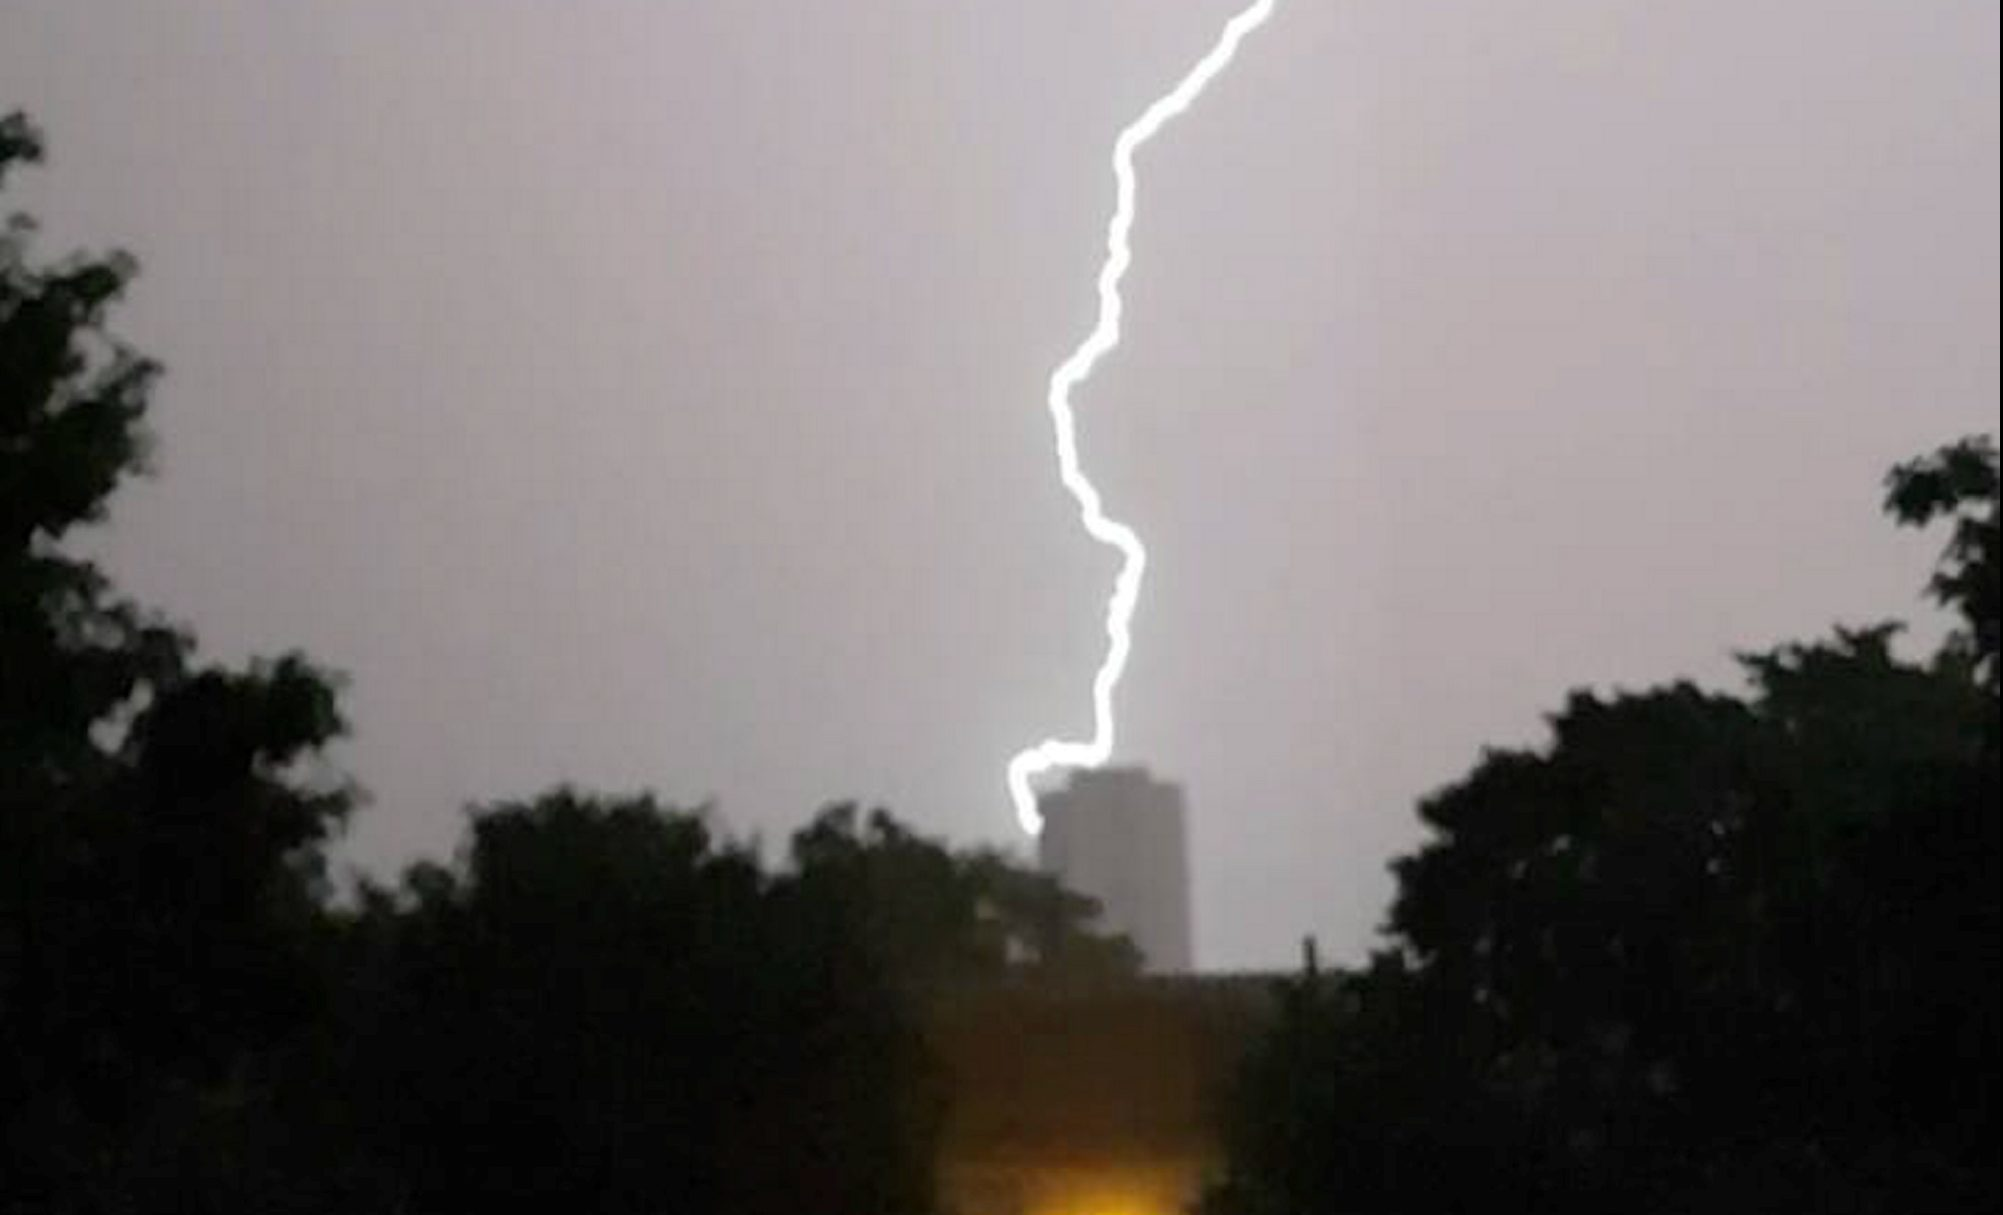 Craig Lawson captured this image of lightning striking one of the blocks of flats in Seaton.